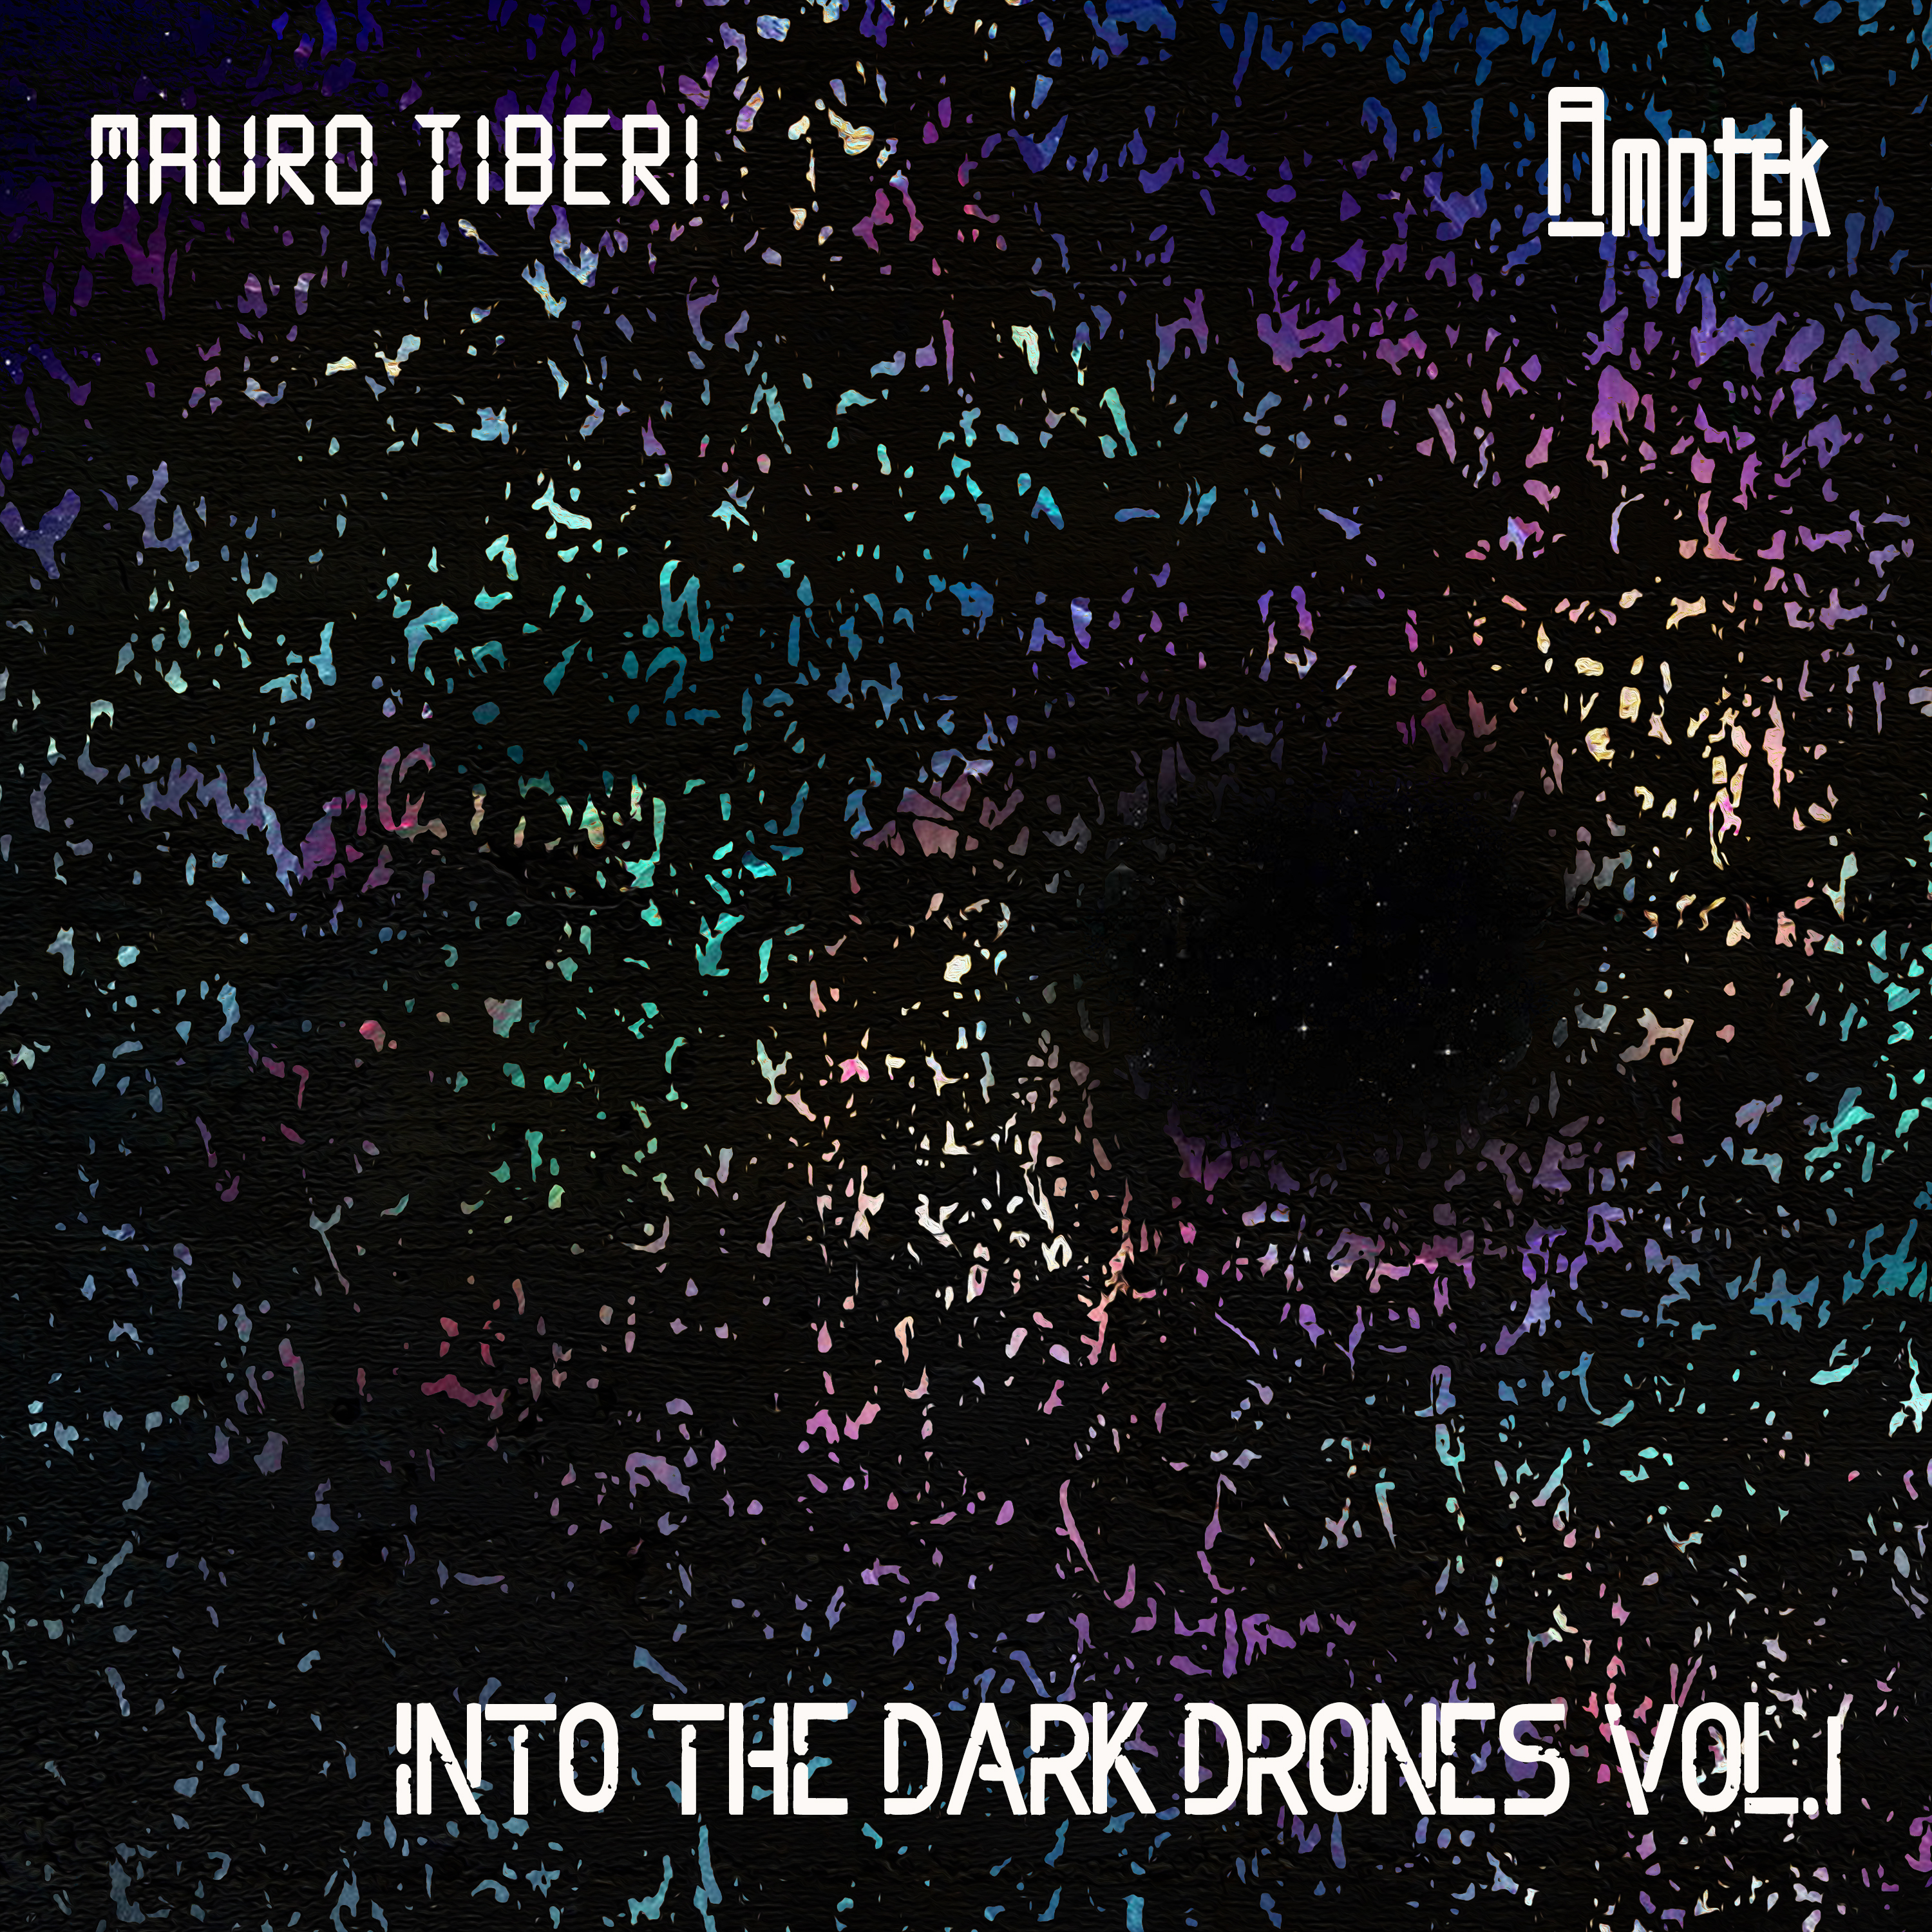 E69 – Mauro Tiberi & Amptek: Into The Dark Drones vol.1